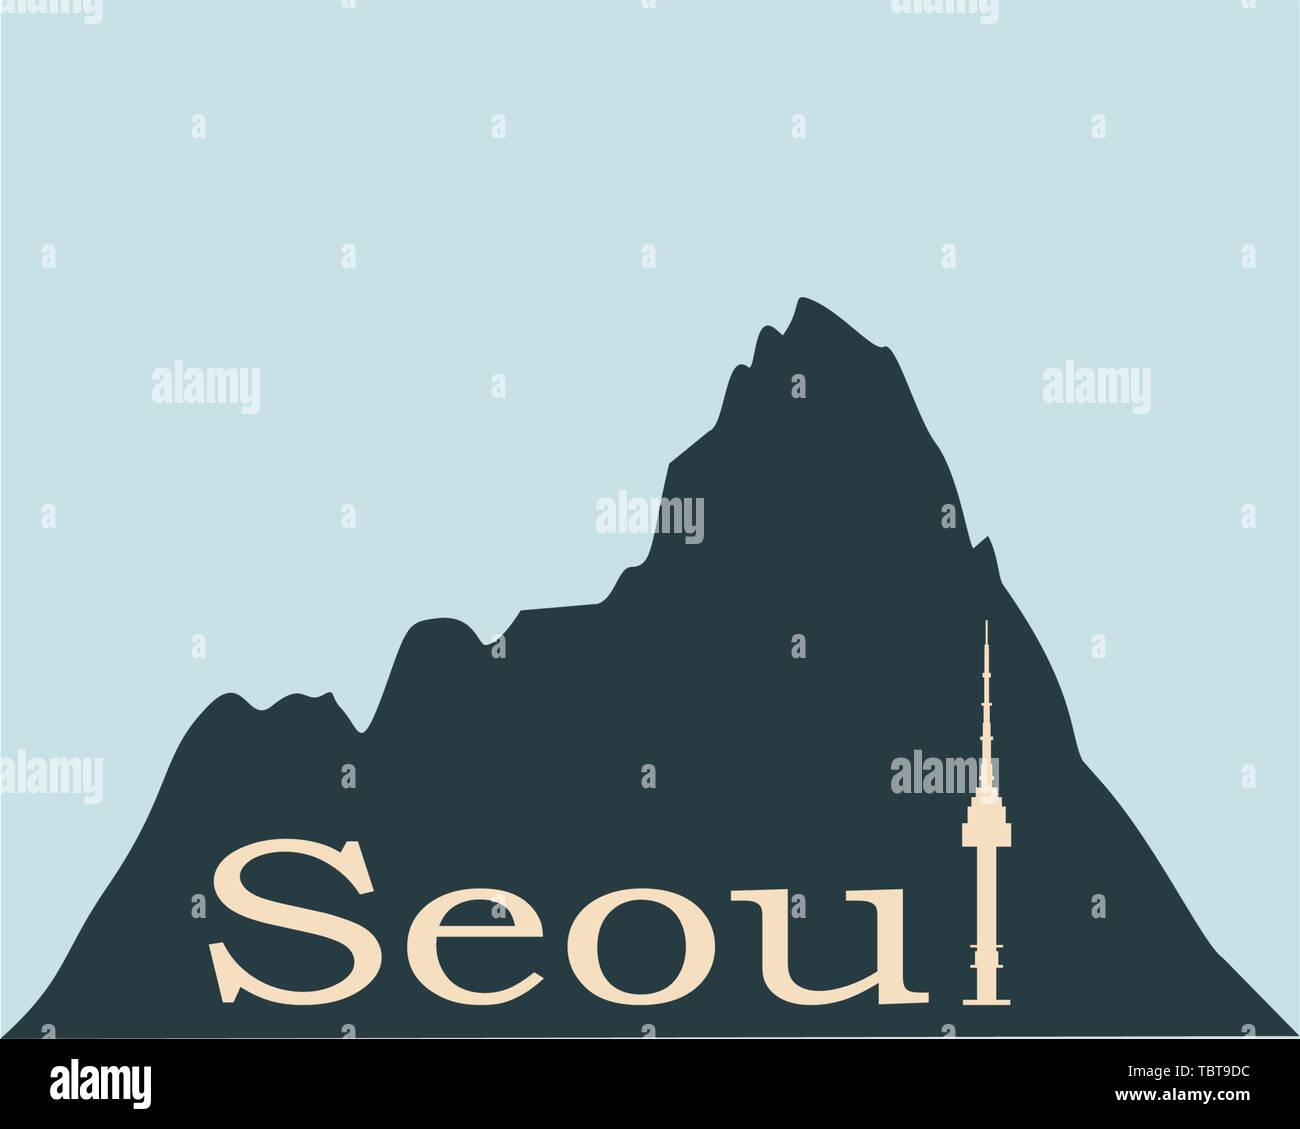 Namsan tower in Seoul icon - Stock Vector